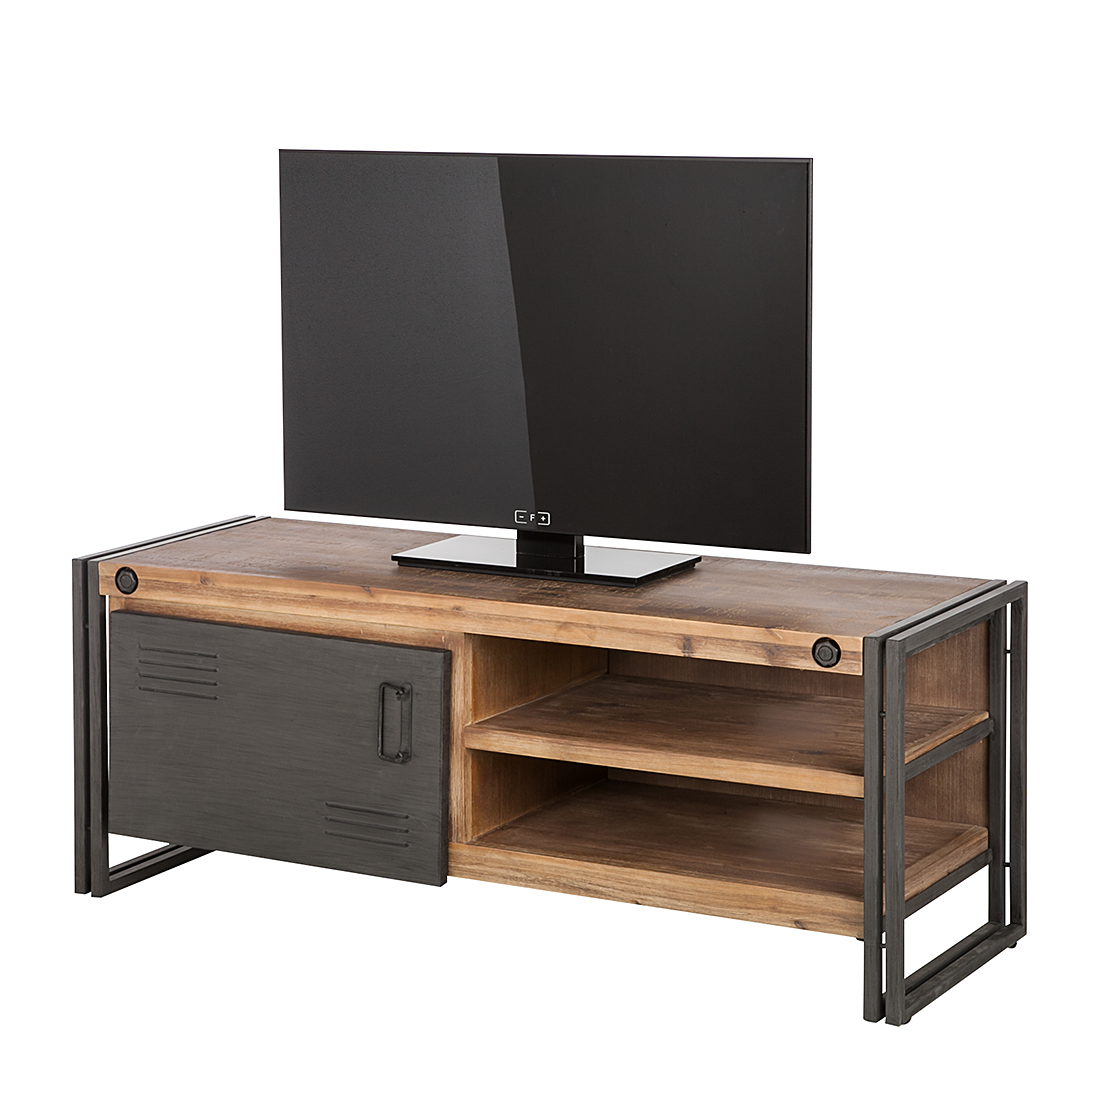 lowboard industrial akazie massivholz tv unterschrank. Black Bedroom Furniture Sets. Home Design Ideas